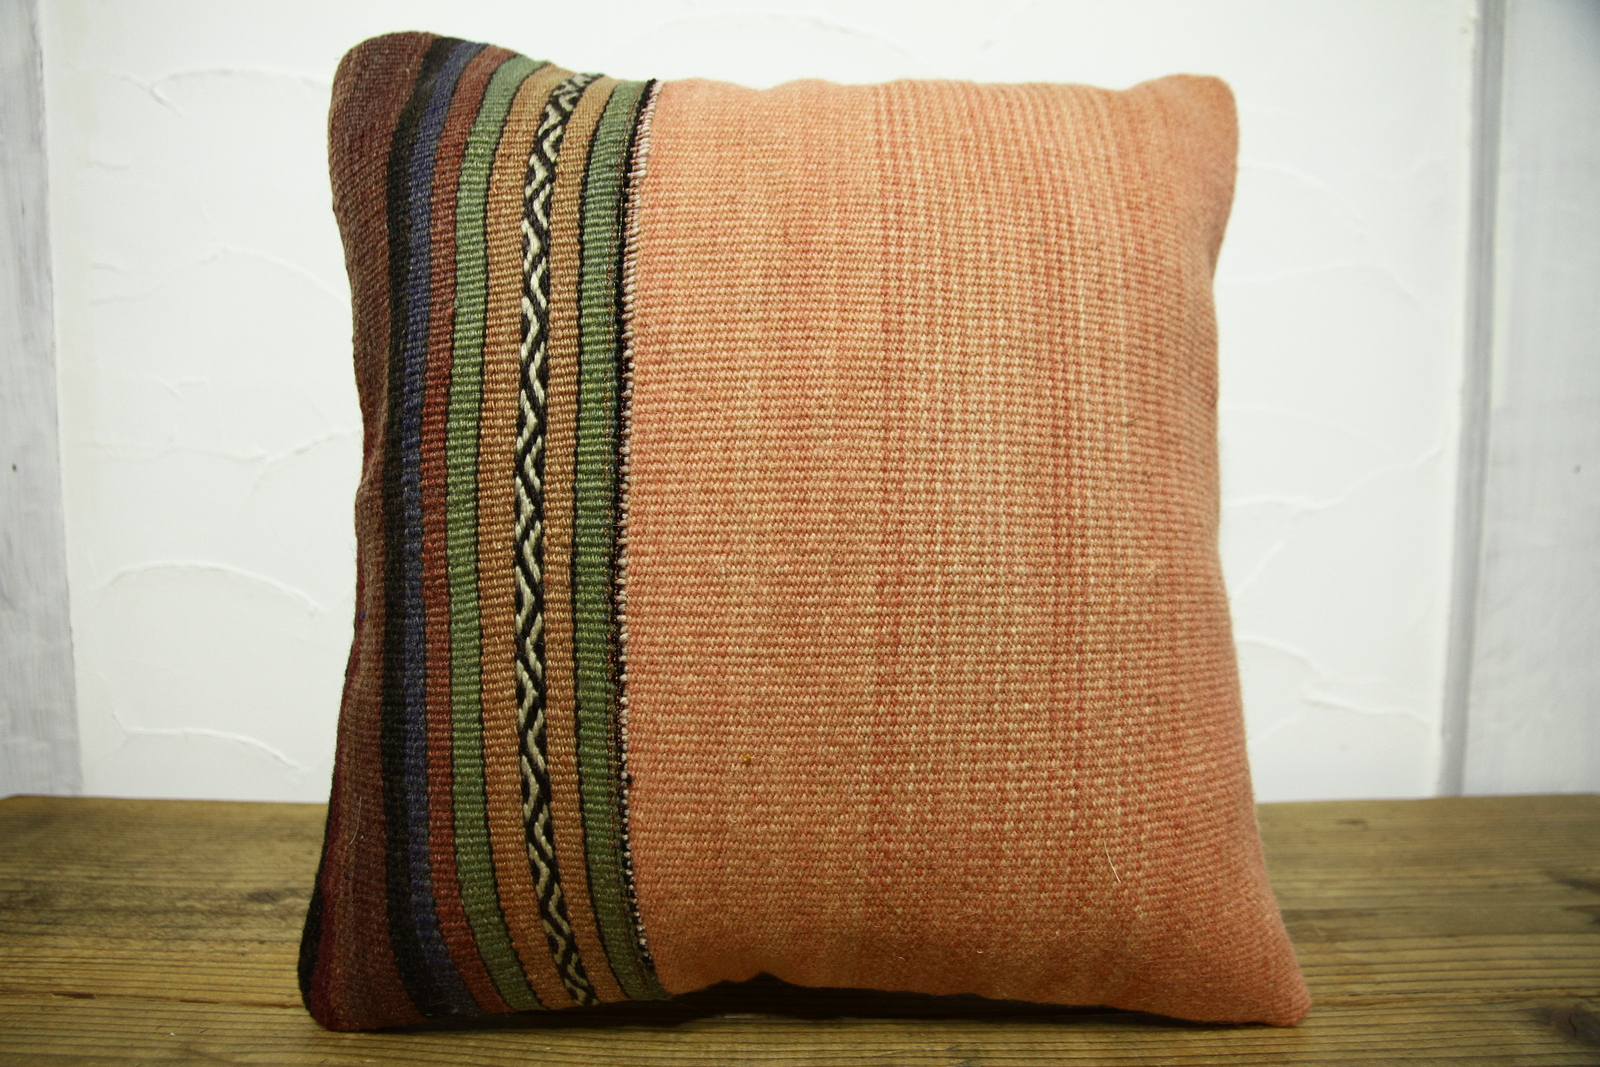 Kilim Pillows |16x16 | Decorative Pillows | 460 | Accent Pillows turkish pillow